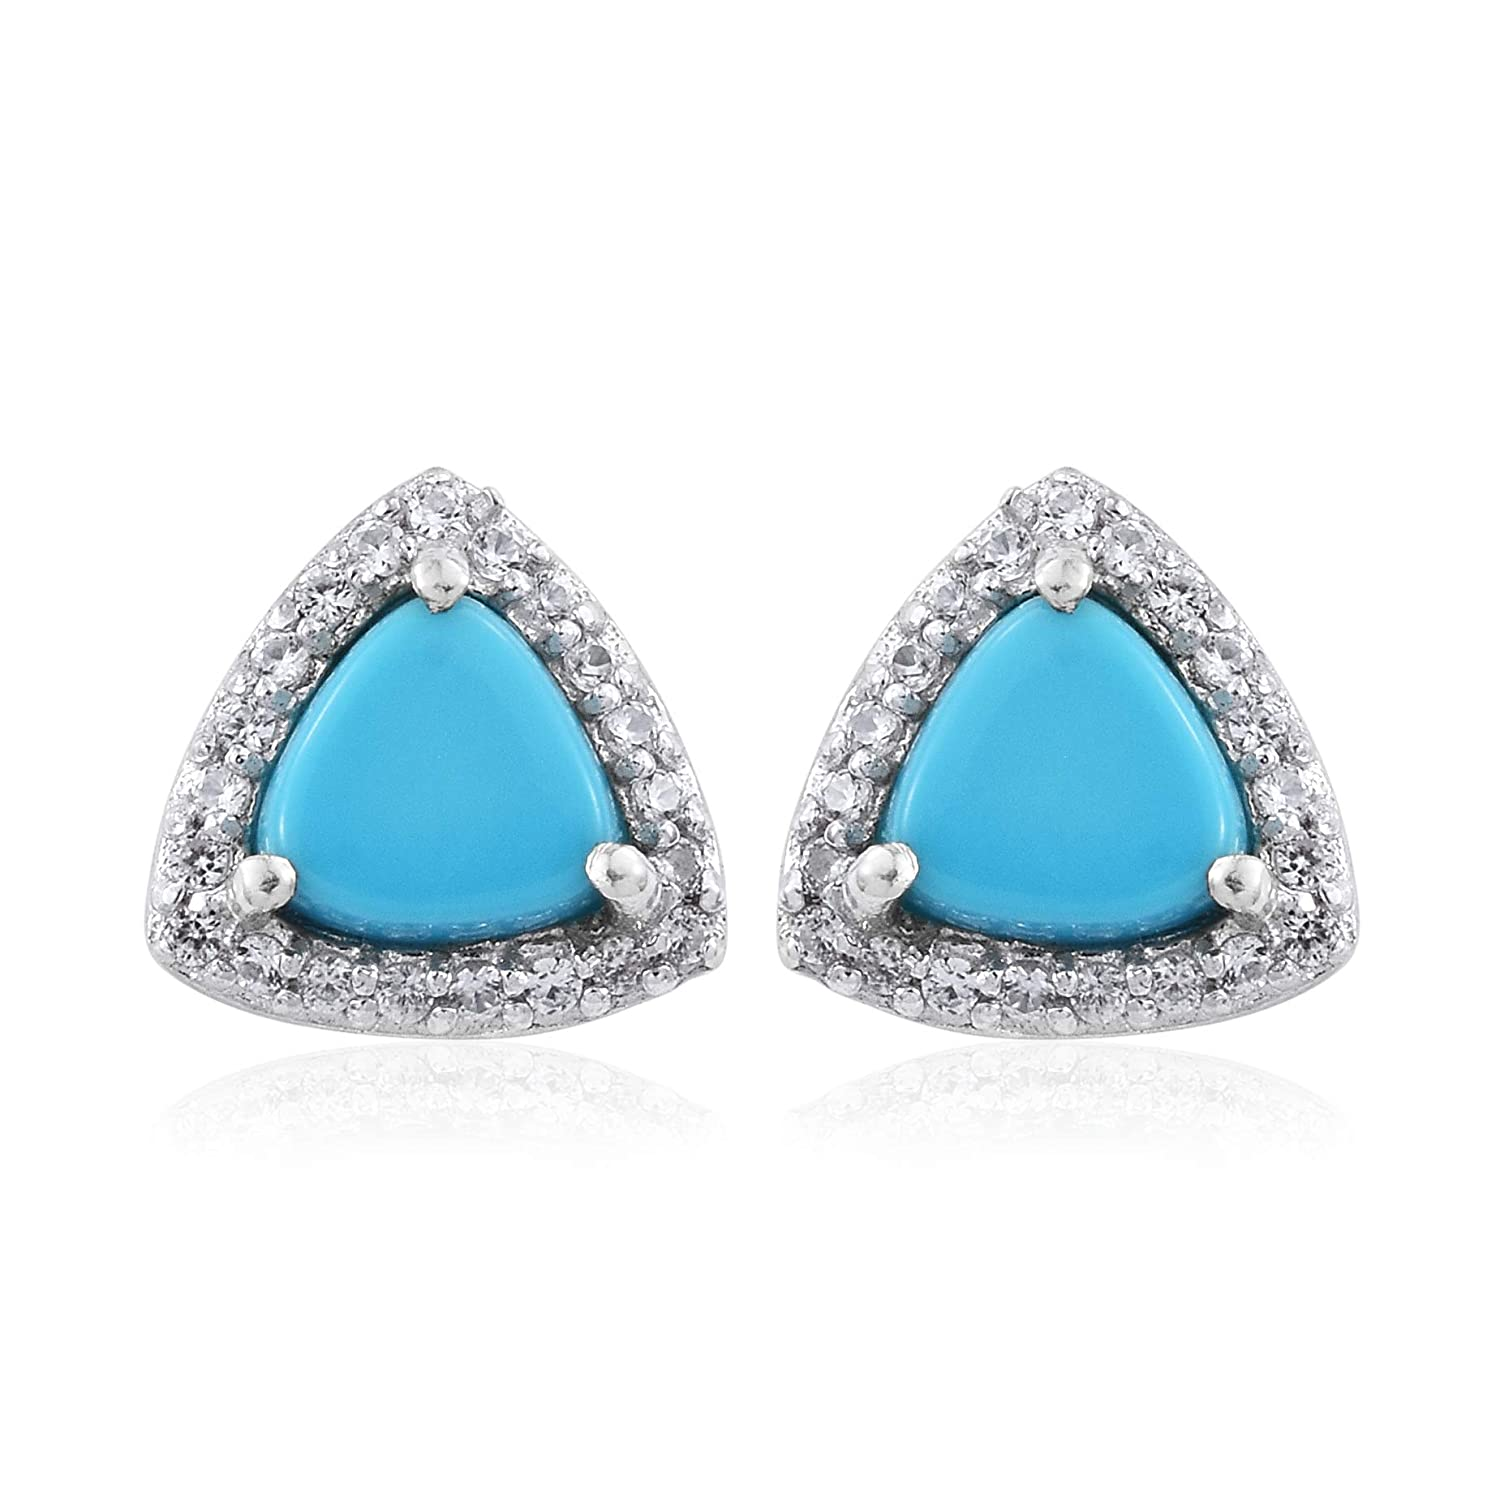 aa2b631cb QUALITY CRAFTSMANSHIP: Made using rhodium-plated-silver these Earrings are  built to last! The secure post-with-friction-back back findings make sure  these ...